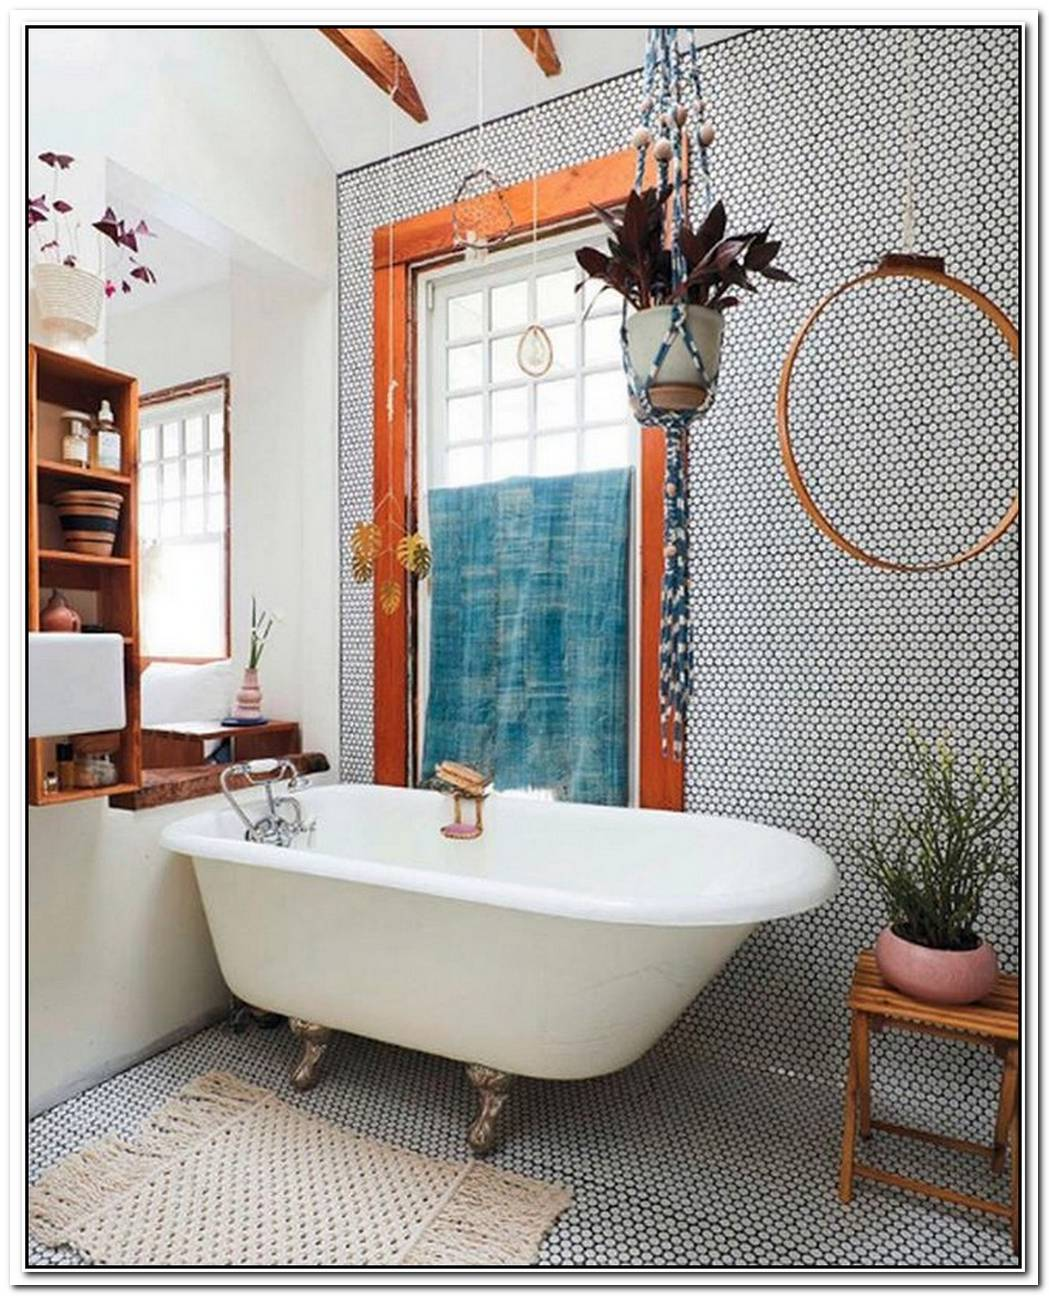 All Over Penny Tile Adds Intrigue To A Charming Bathroom